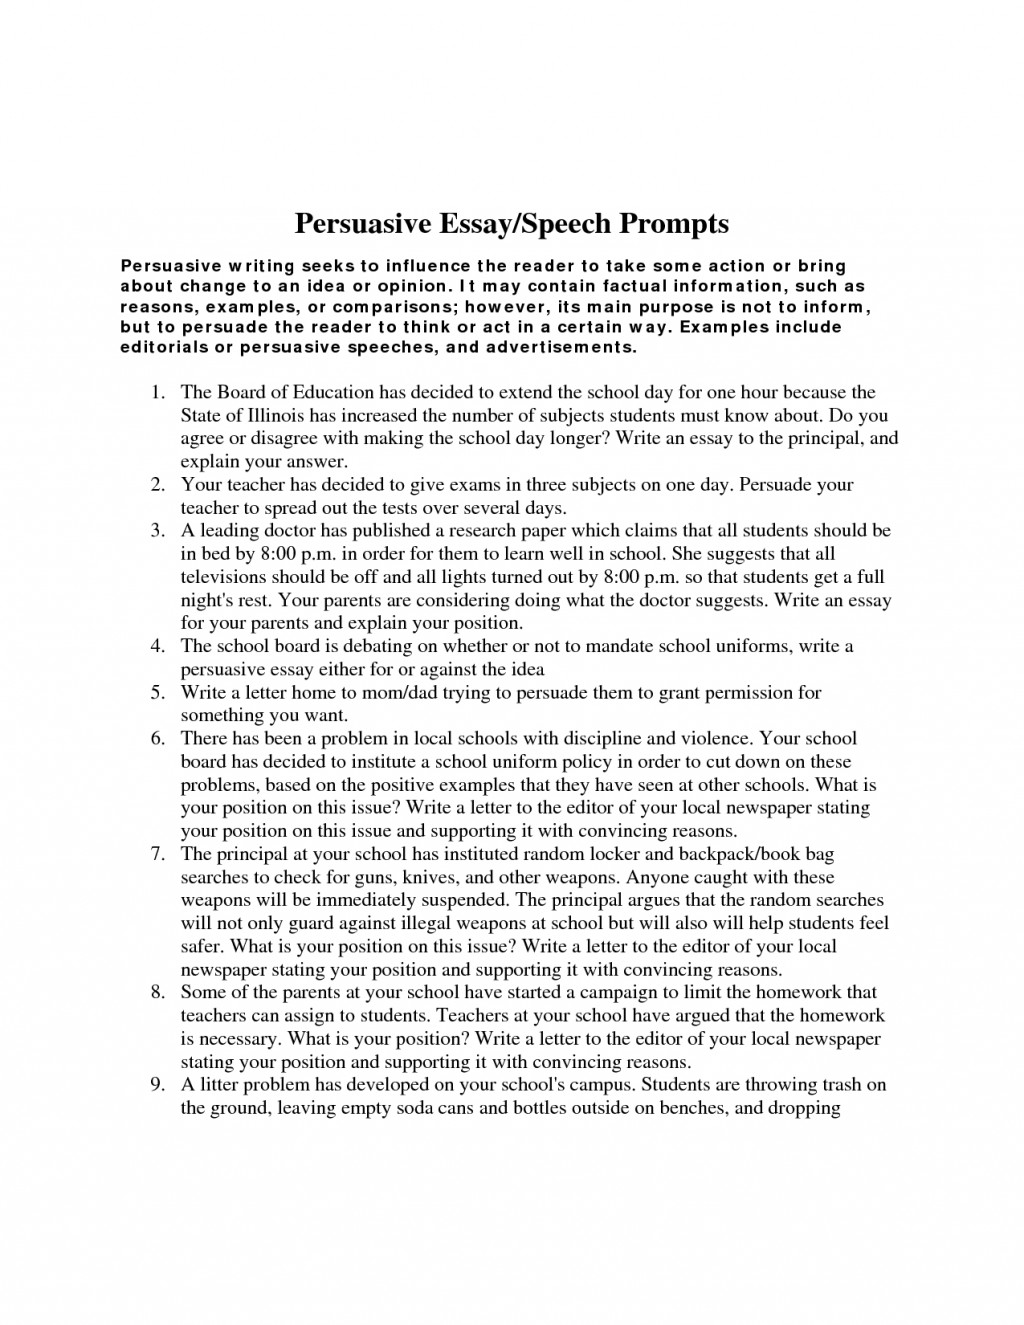 012 Essay Example Persuasive Prompts Informative Remarkable Topics 2018 For High School Prompt 4th Grade Large